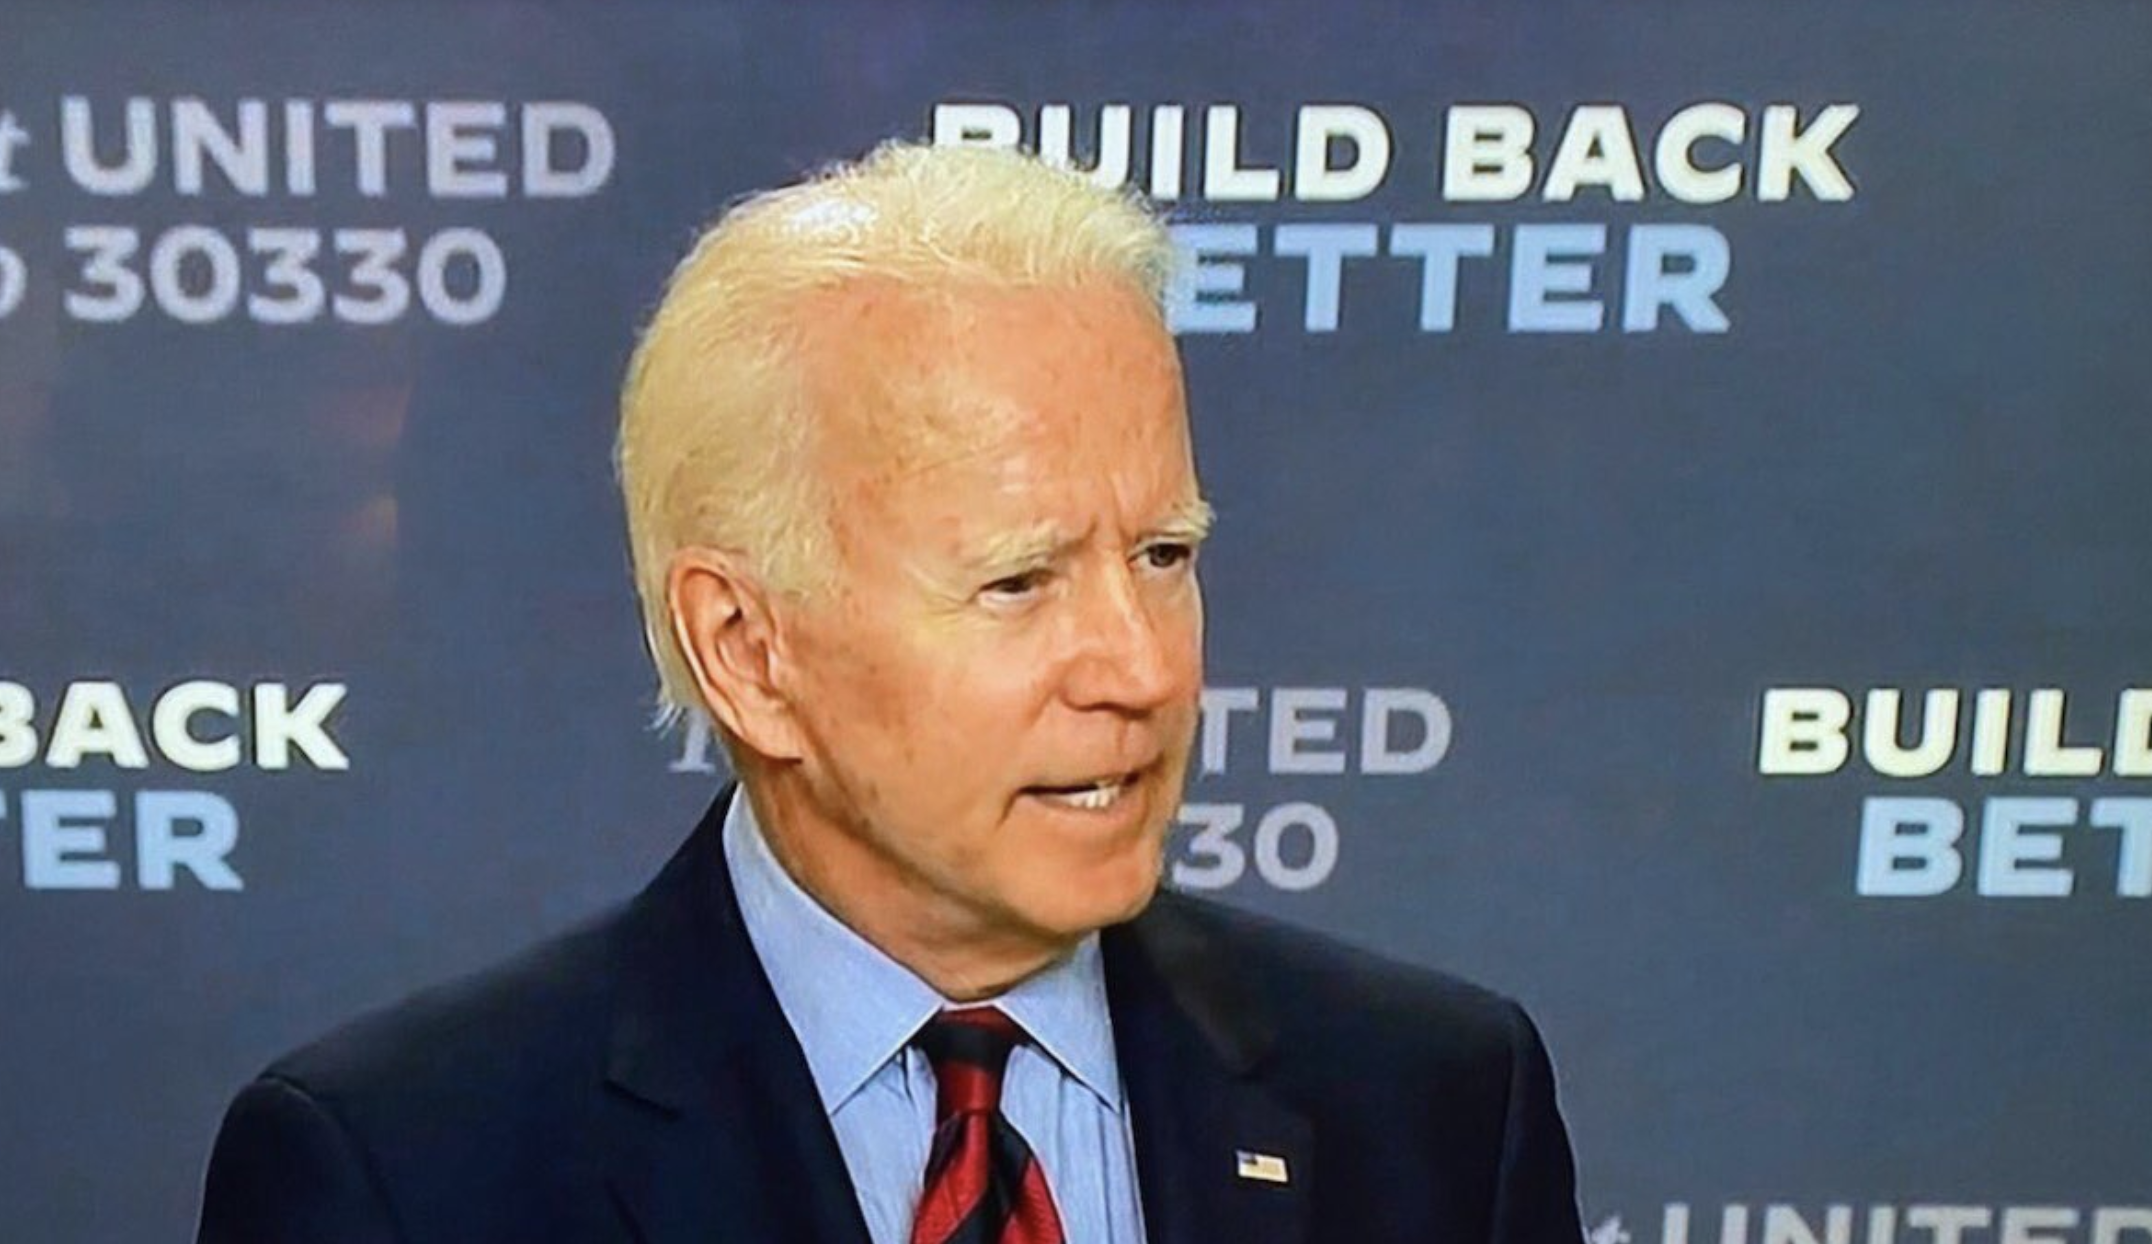 Biden' support for defunding police is hurting him, could cost him election